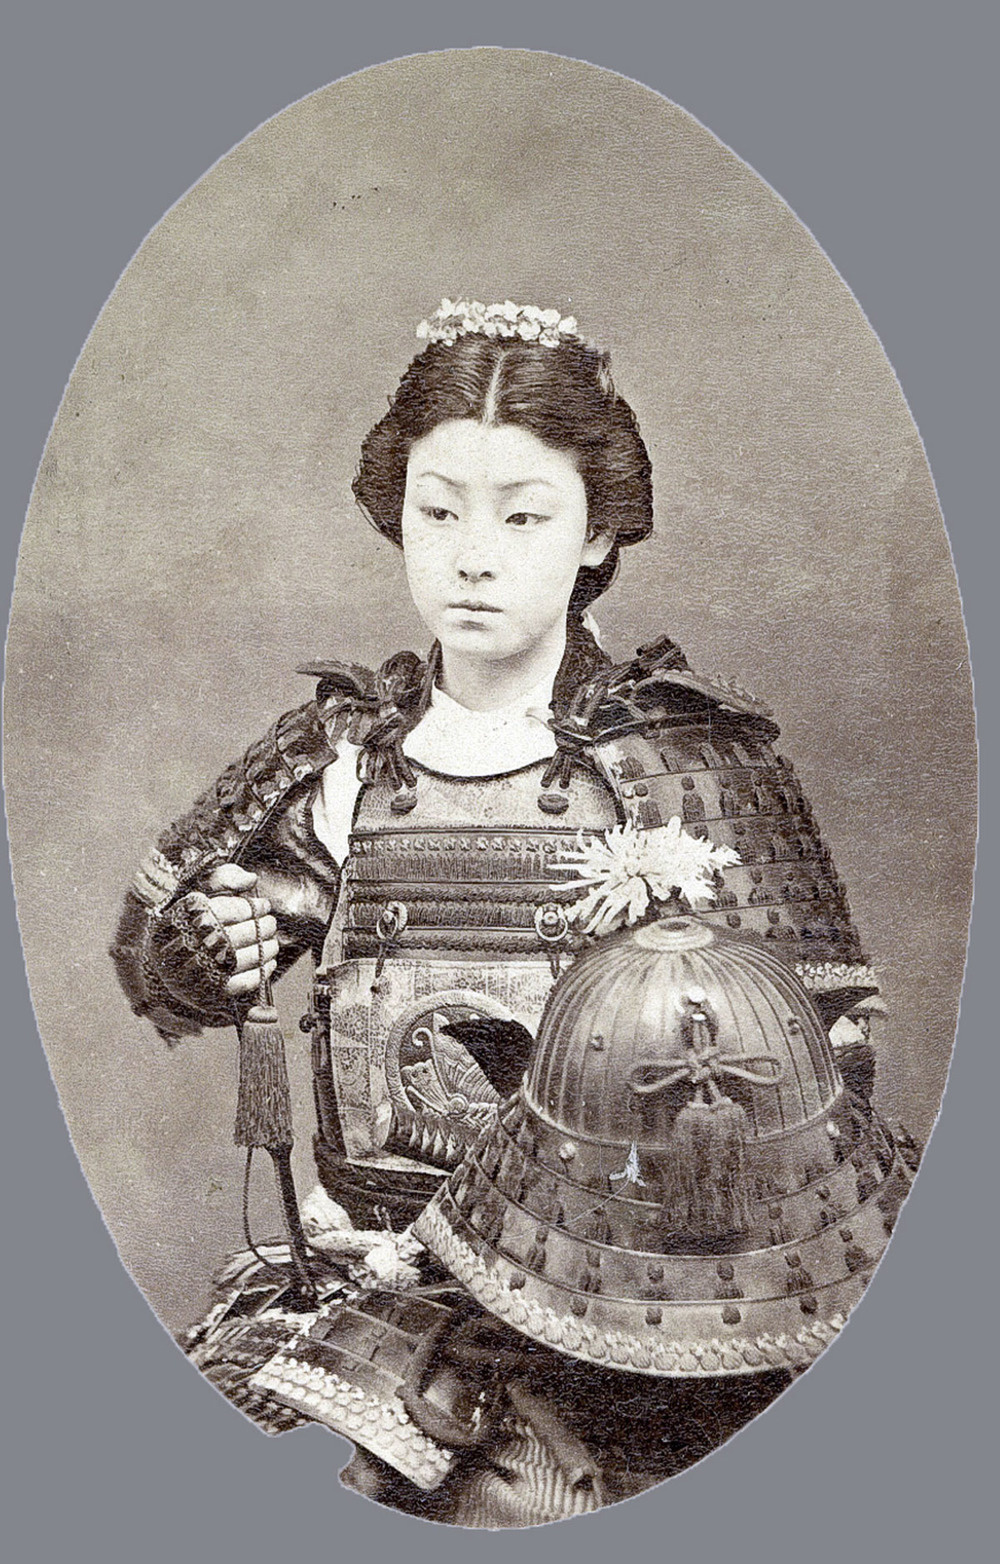 The armour was as much about their protection, spirituality, and glamour.